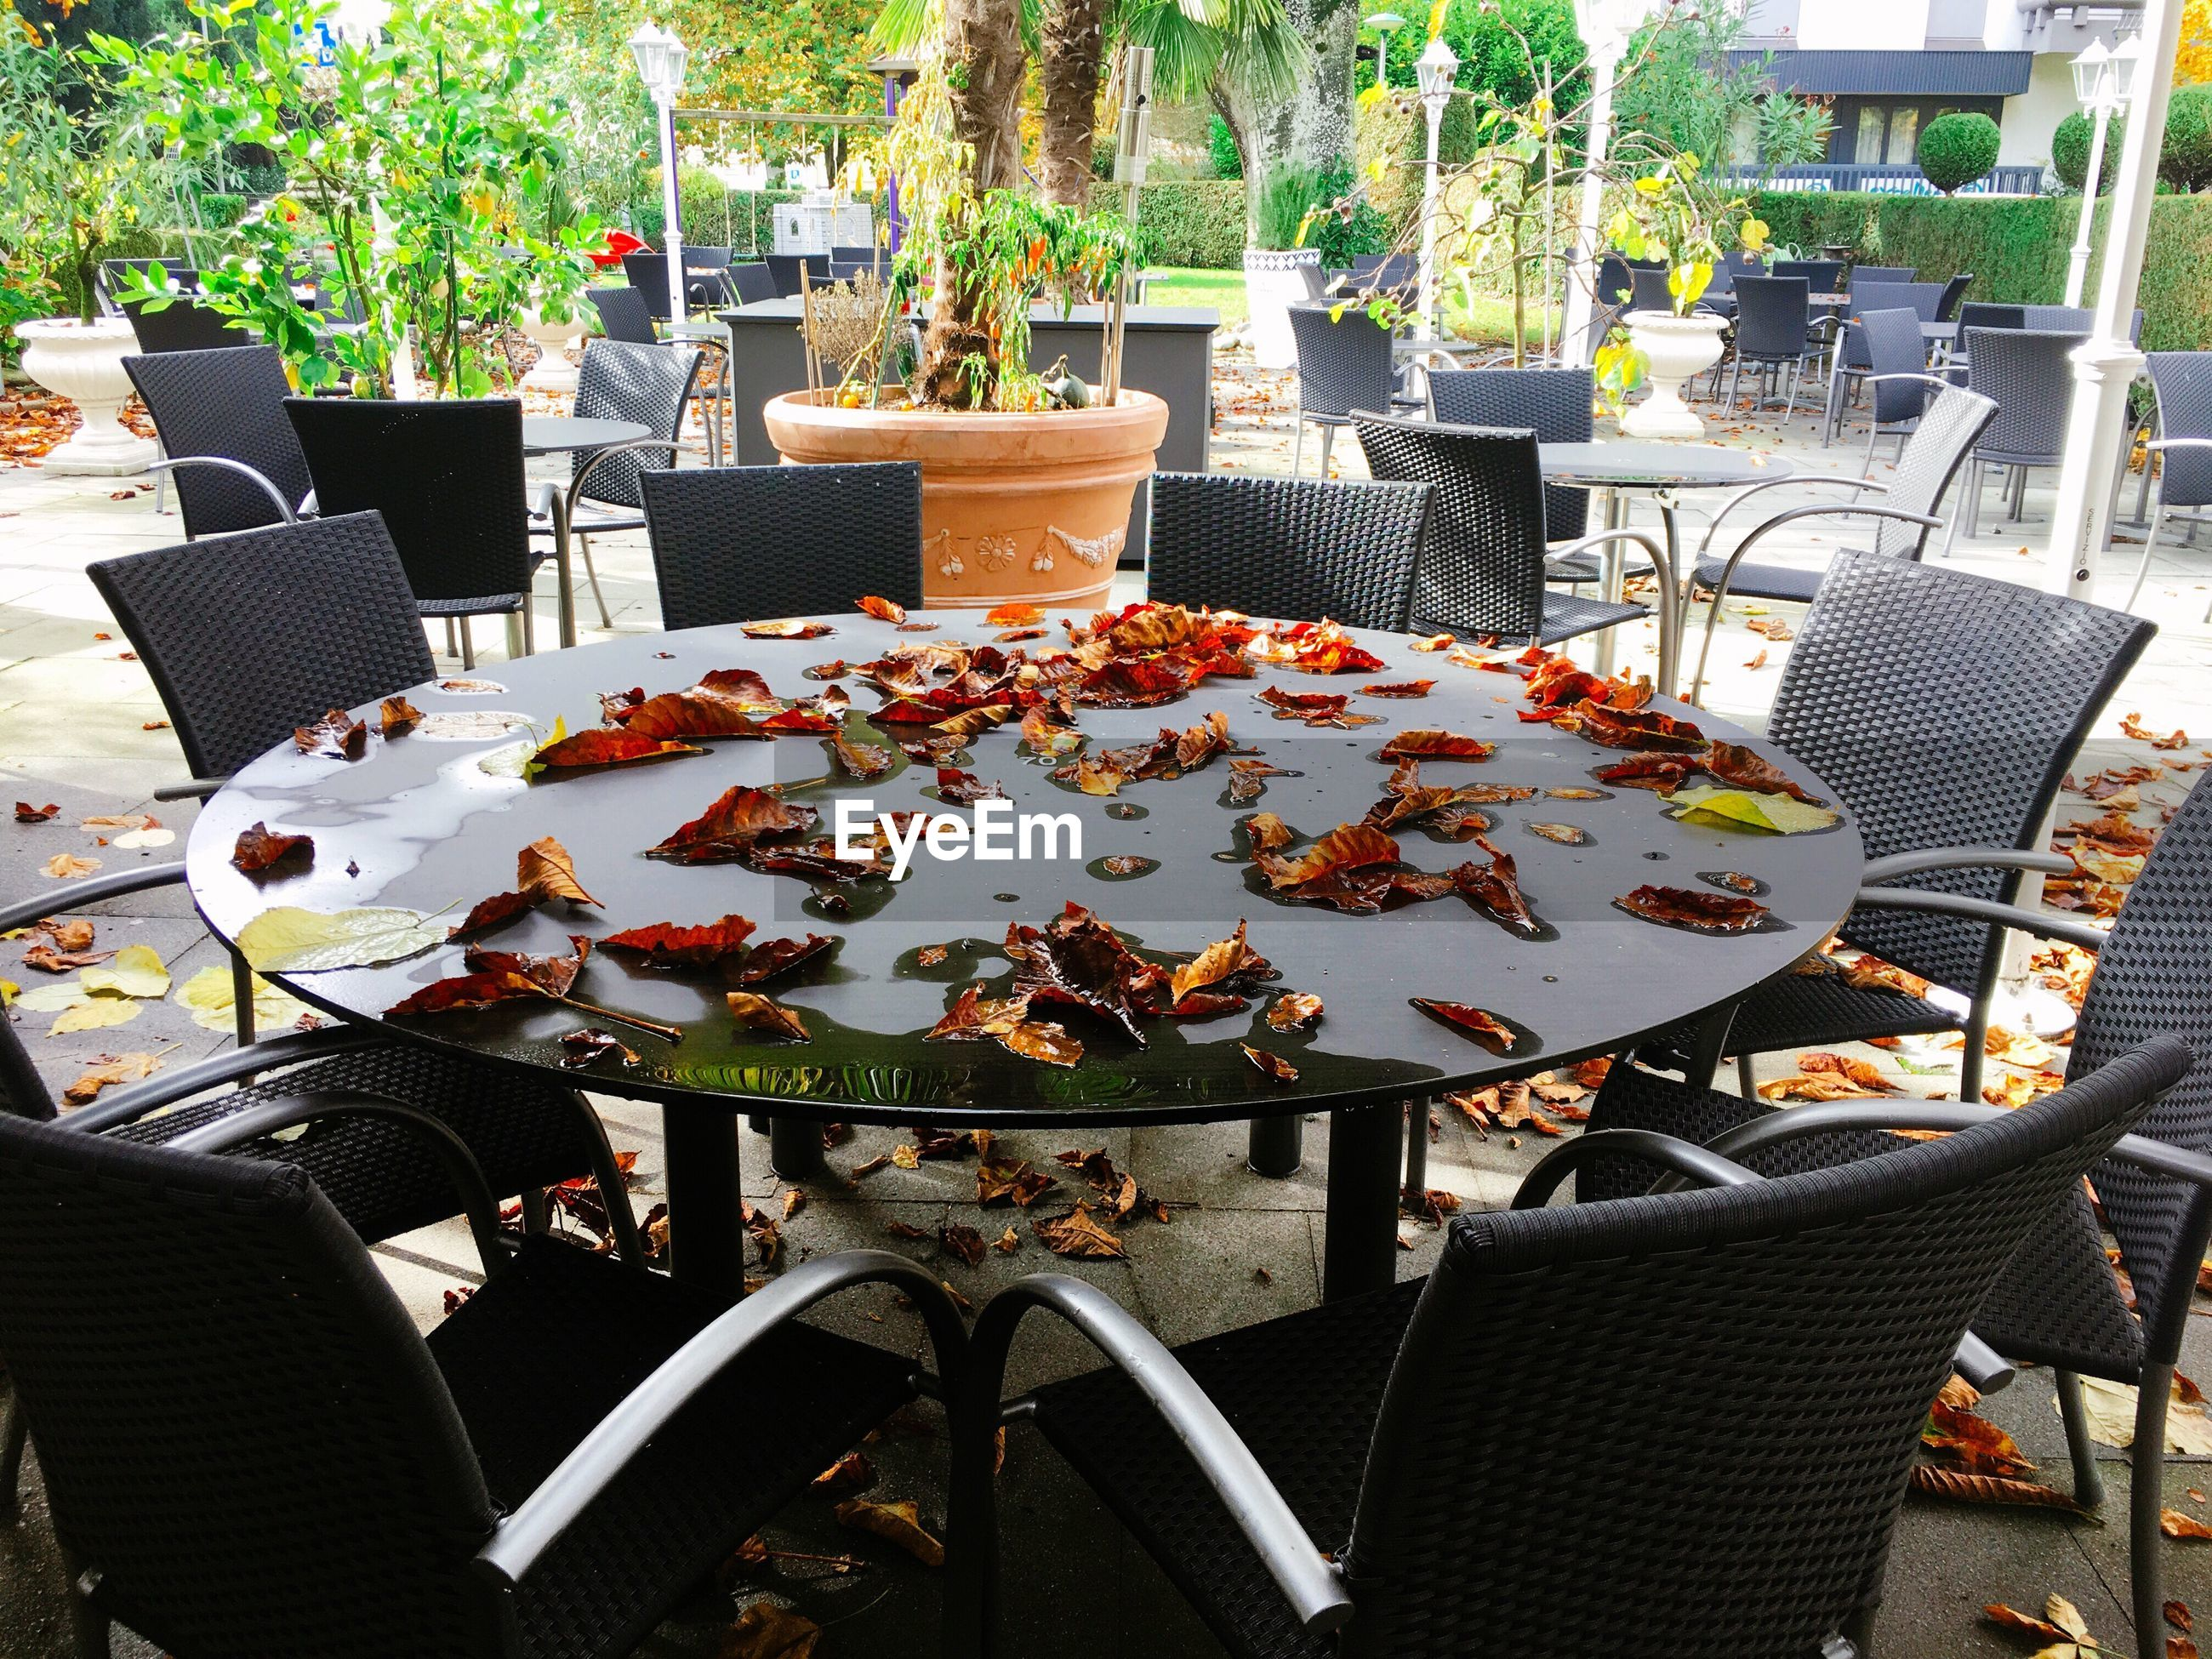 Fallen autumn leaves on wet table amidst chairs at outdoor restaurant